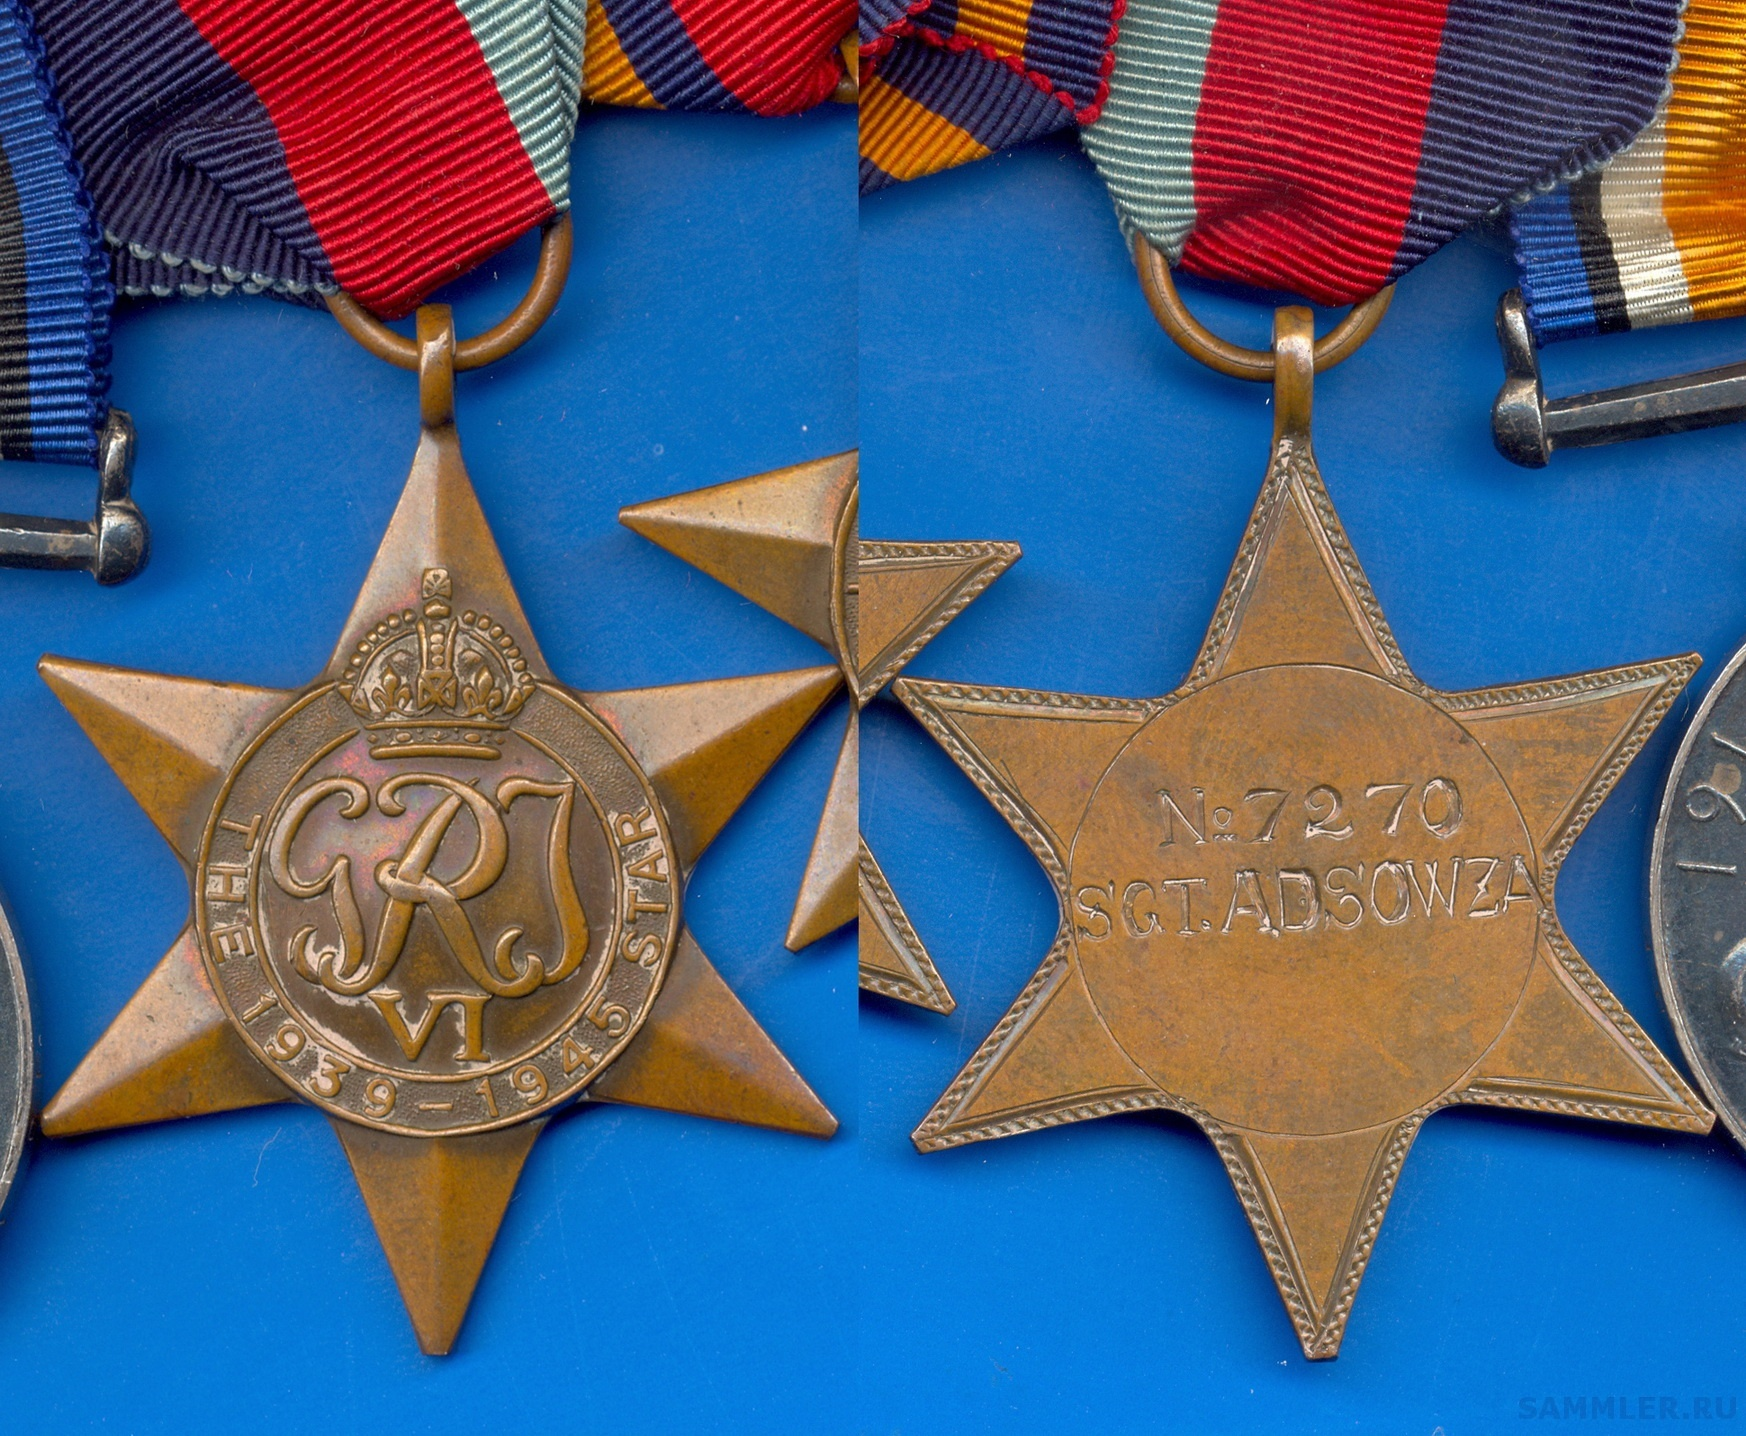 177. 1939-45 Star to No. 7270 SGT. A. D'SOWZA.jpg